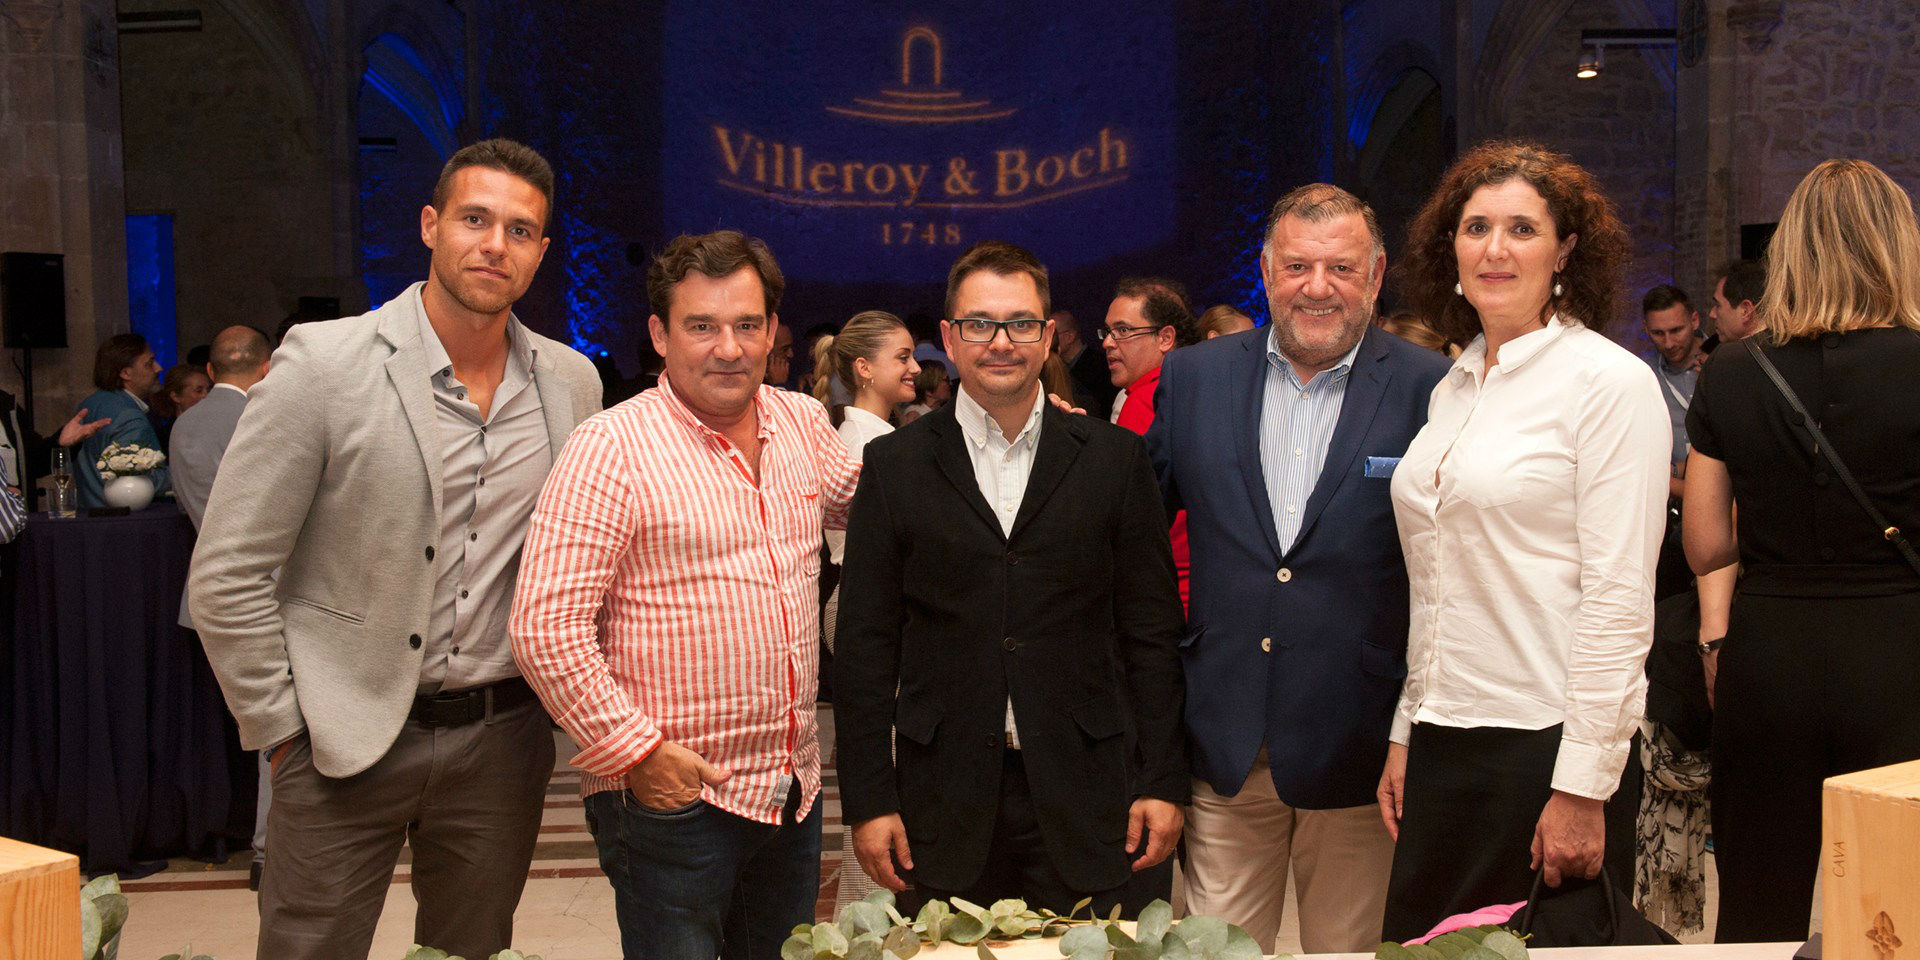 Villeroy & Boch discusses Intelligent Design and Wellbeing at Barcelona event